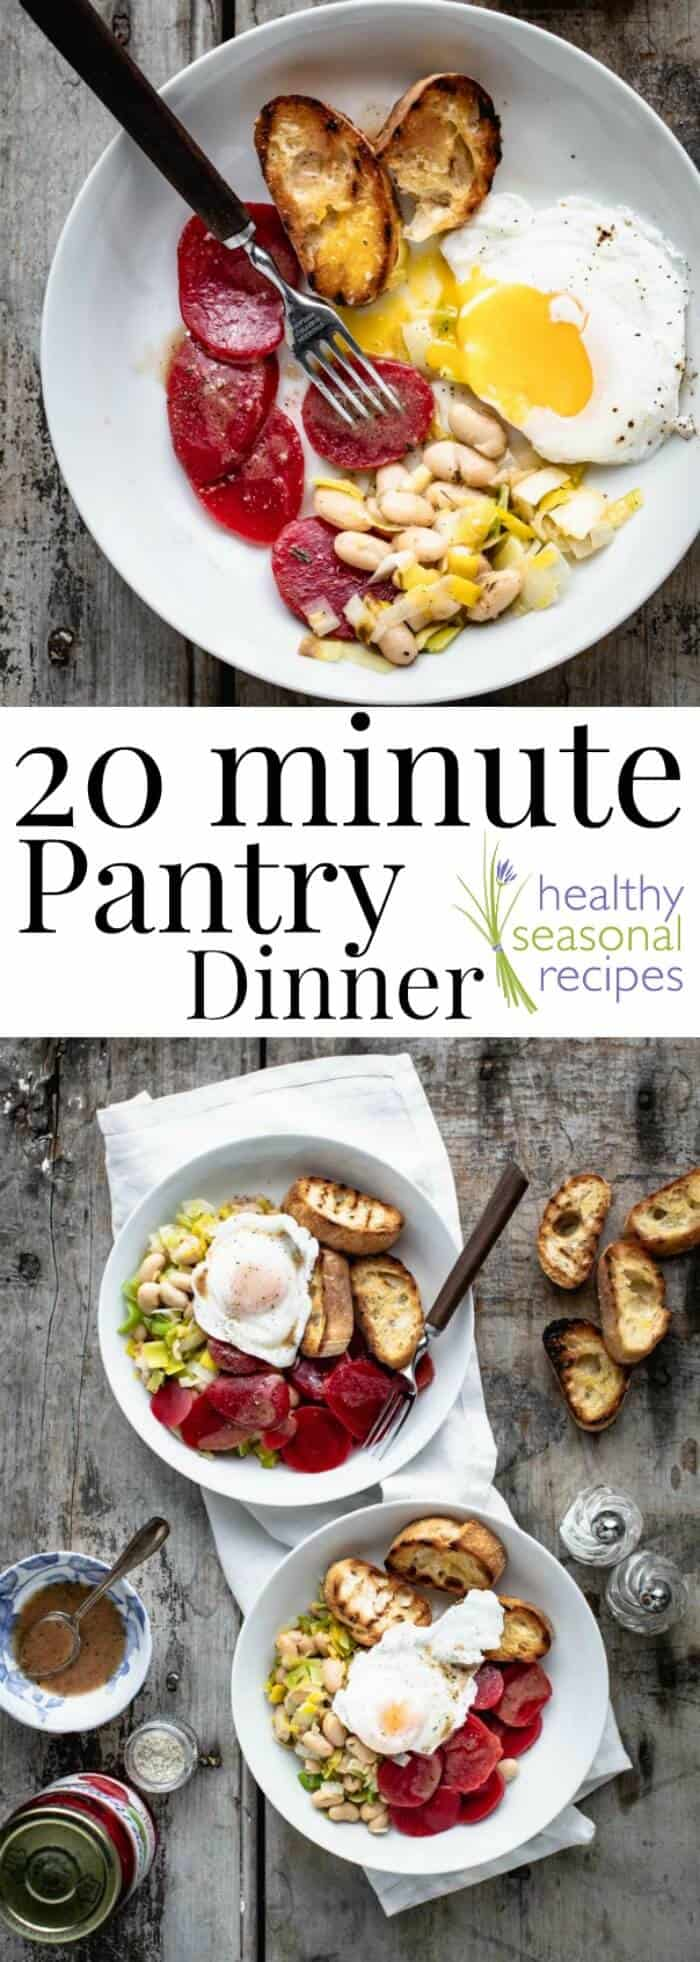 20 Minute Pantry Dinner with warm white beans, beets and poached eggs. A simple vegetarian dinner made from ingredients you already have on hand. #vegetarian #20minutedinner #healthy